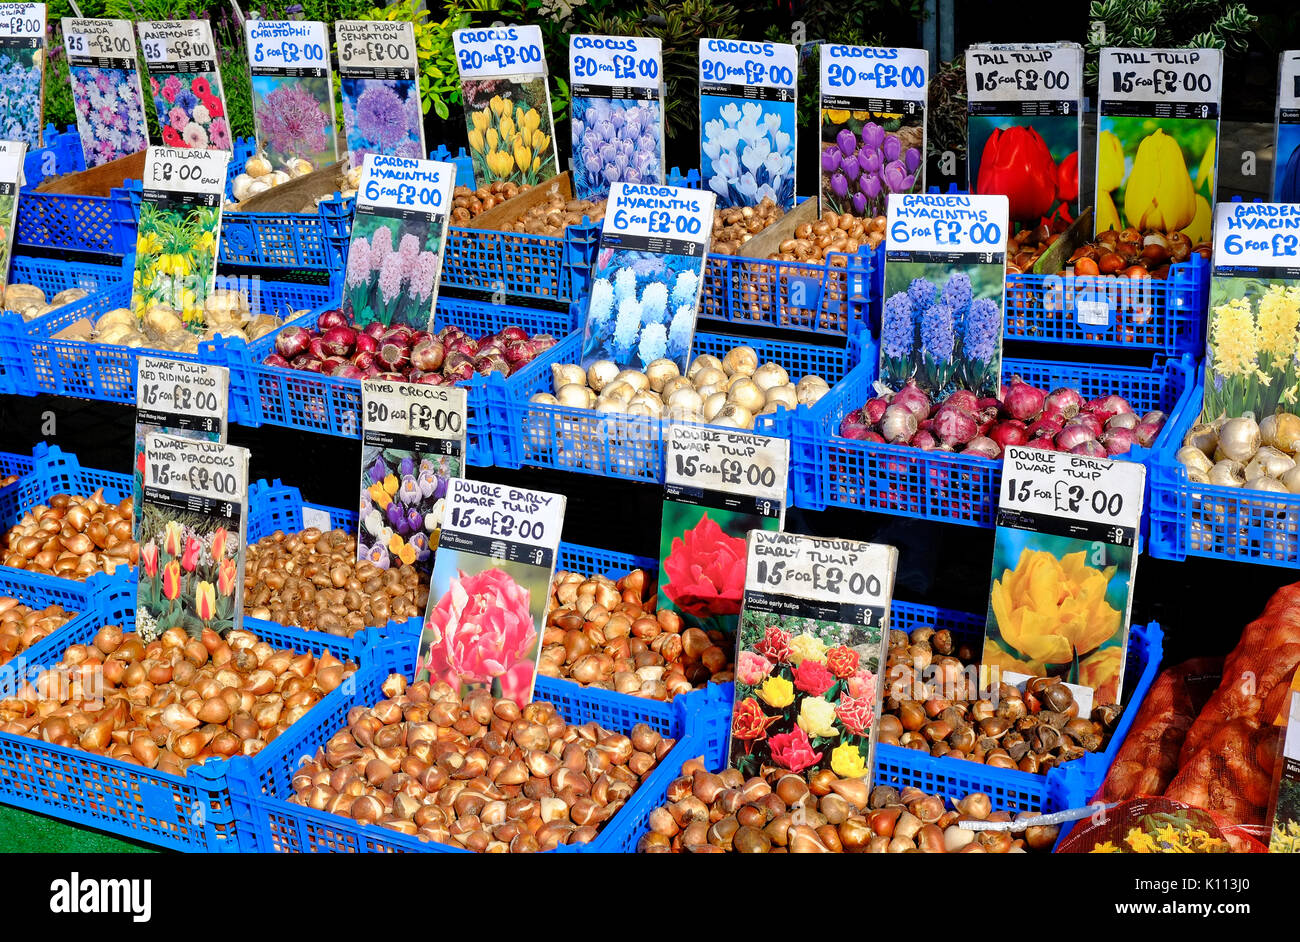 bulbs for sale on nursery market stall - Stock Image